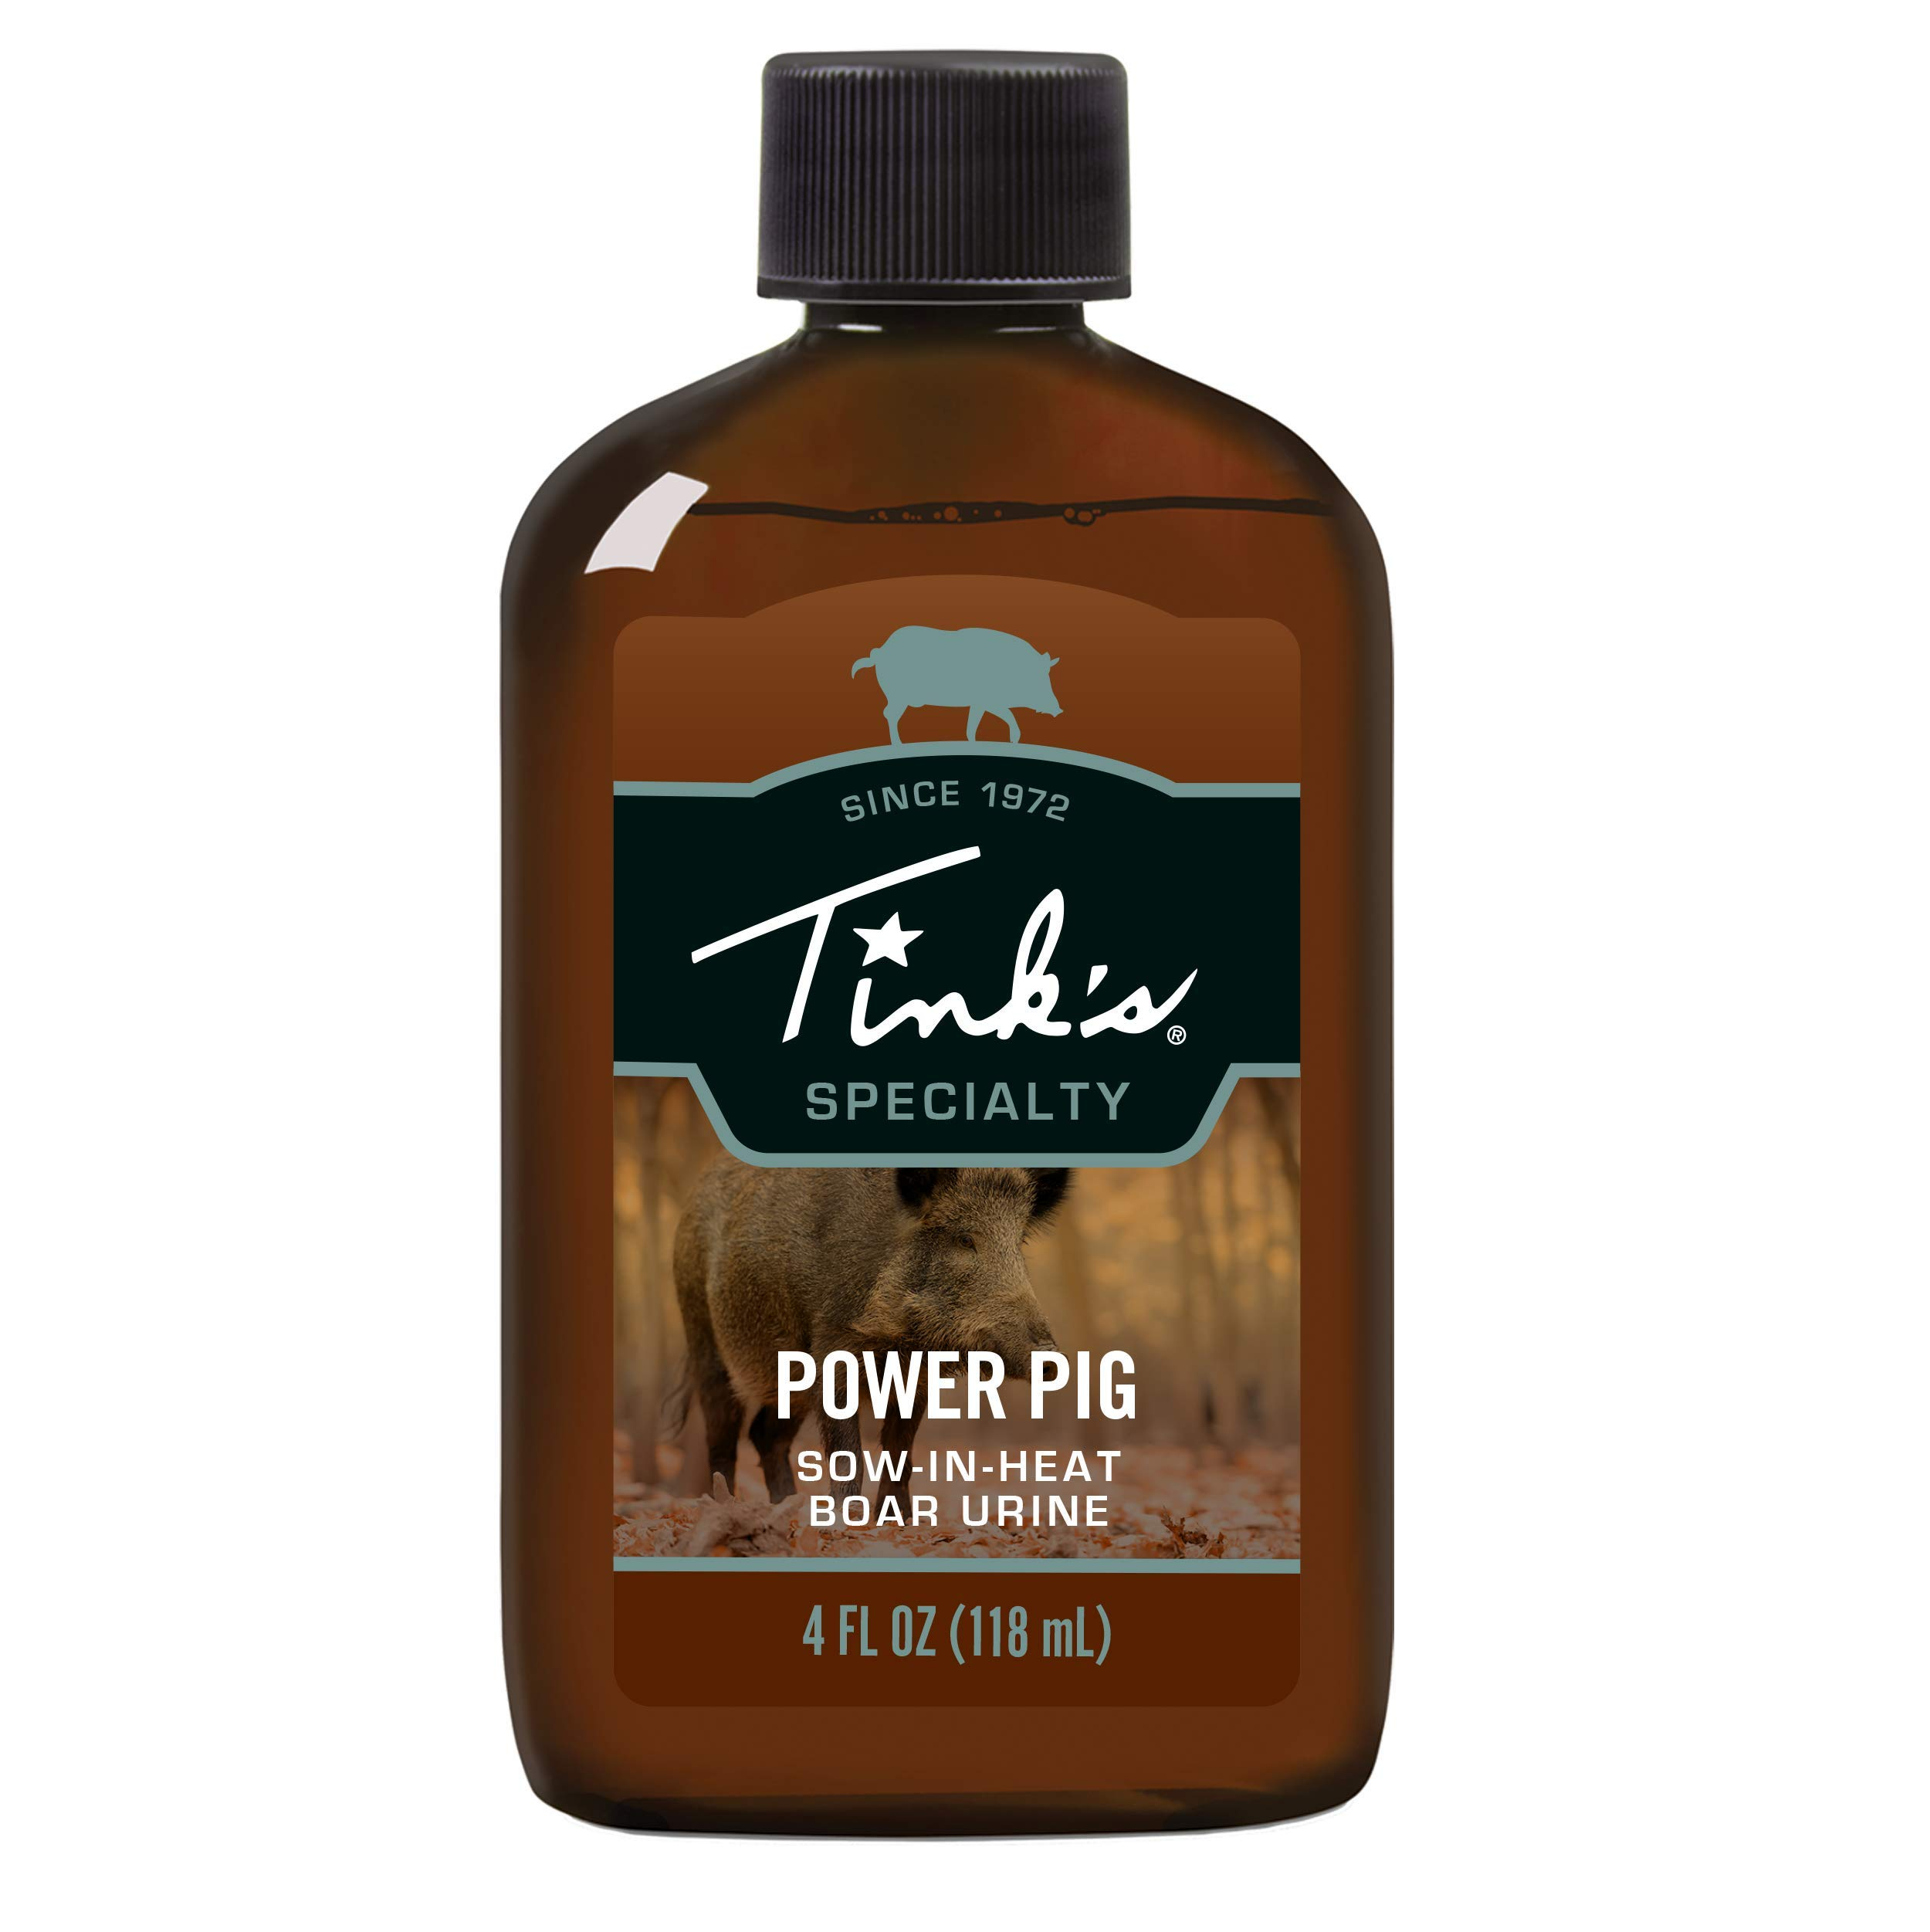 Tink's Power Pig Sow-in-Heat Attractant   4 Oz Bottle   100% Natural Hog Urine, Sow Scented Hog Lure, Hunting Accessories, Boar Scents, Wild Hog Attractants   Easy to Use Squirt Top